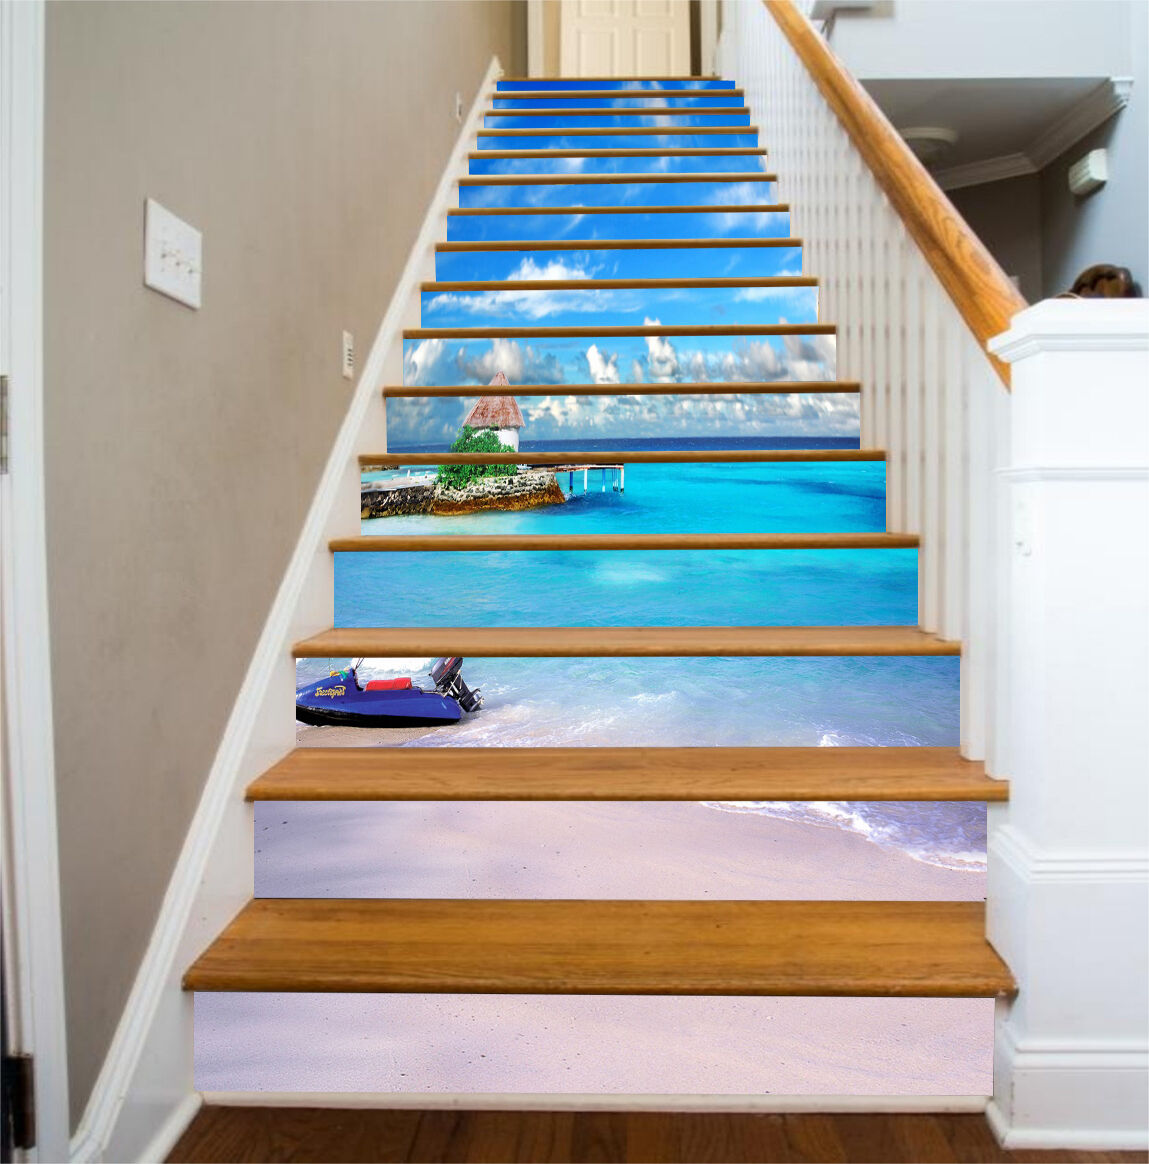 3D Beach Scenery 04 Stair Risers Decoration Photo Mural Vinyl Decal Wallpaper AU